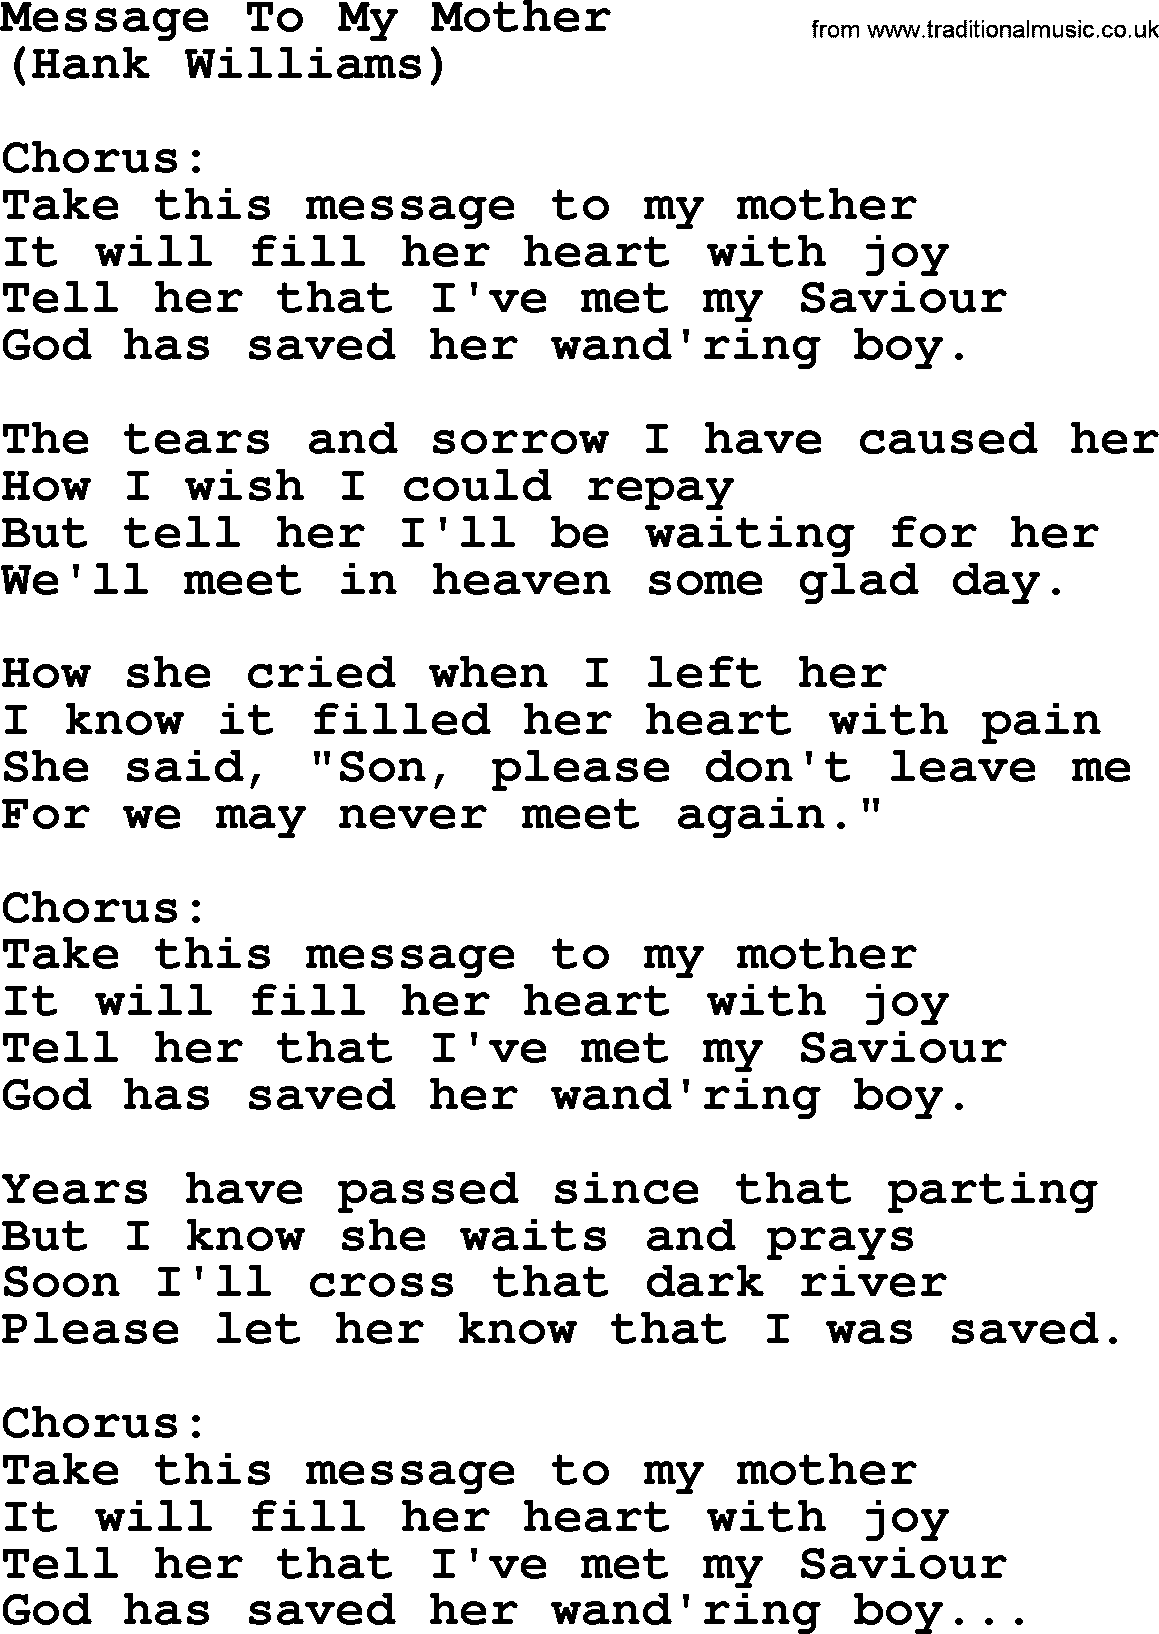 Hank Williams song: Message To My Mother, lyrics